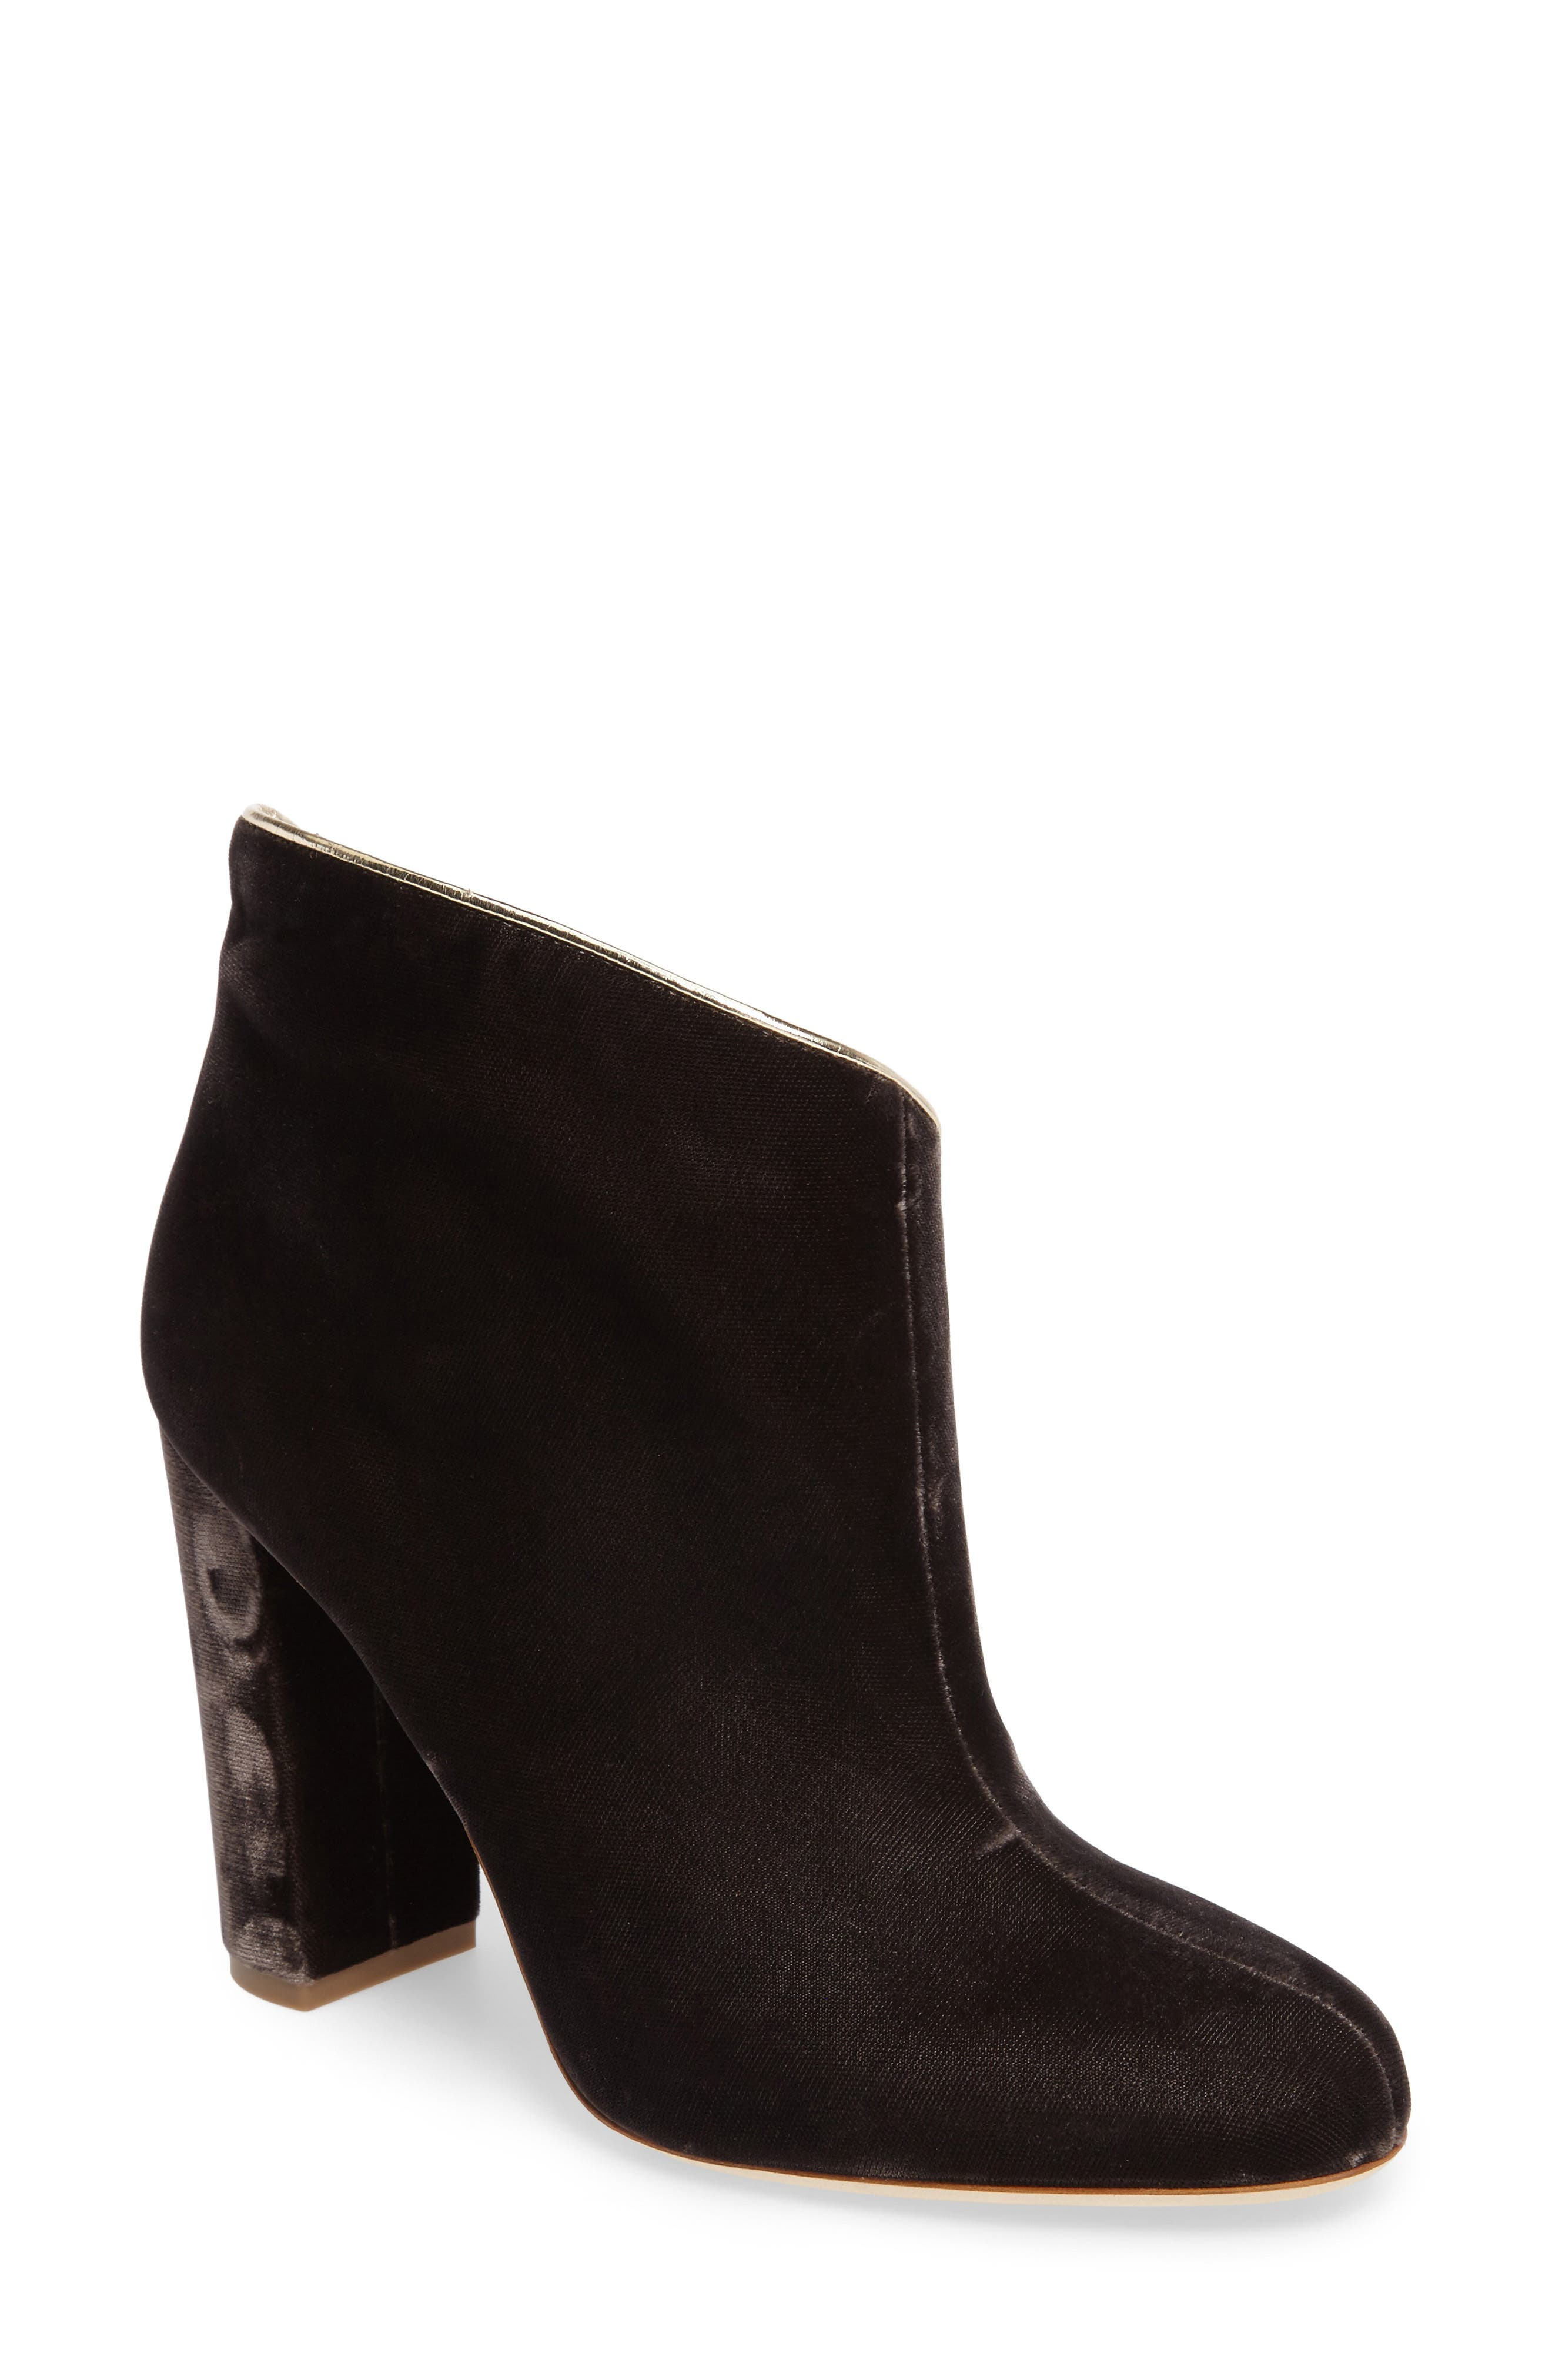 Alternate Image 1 Selected - Malone Souliers Eula Bootie (Women)